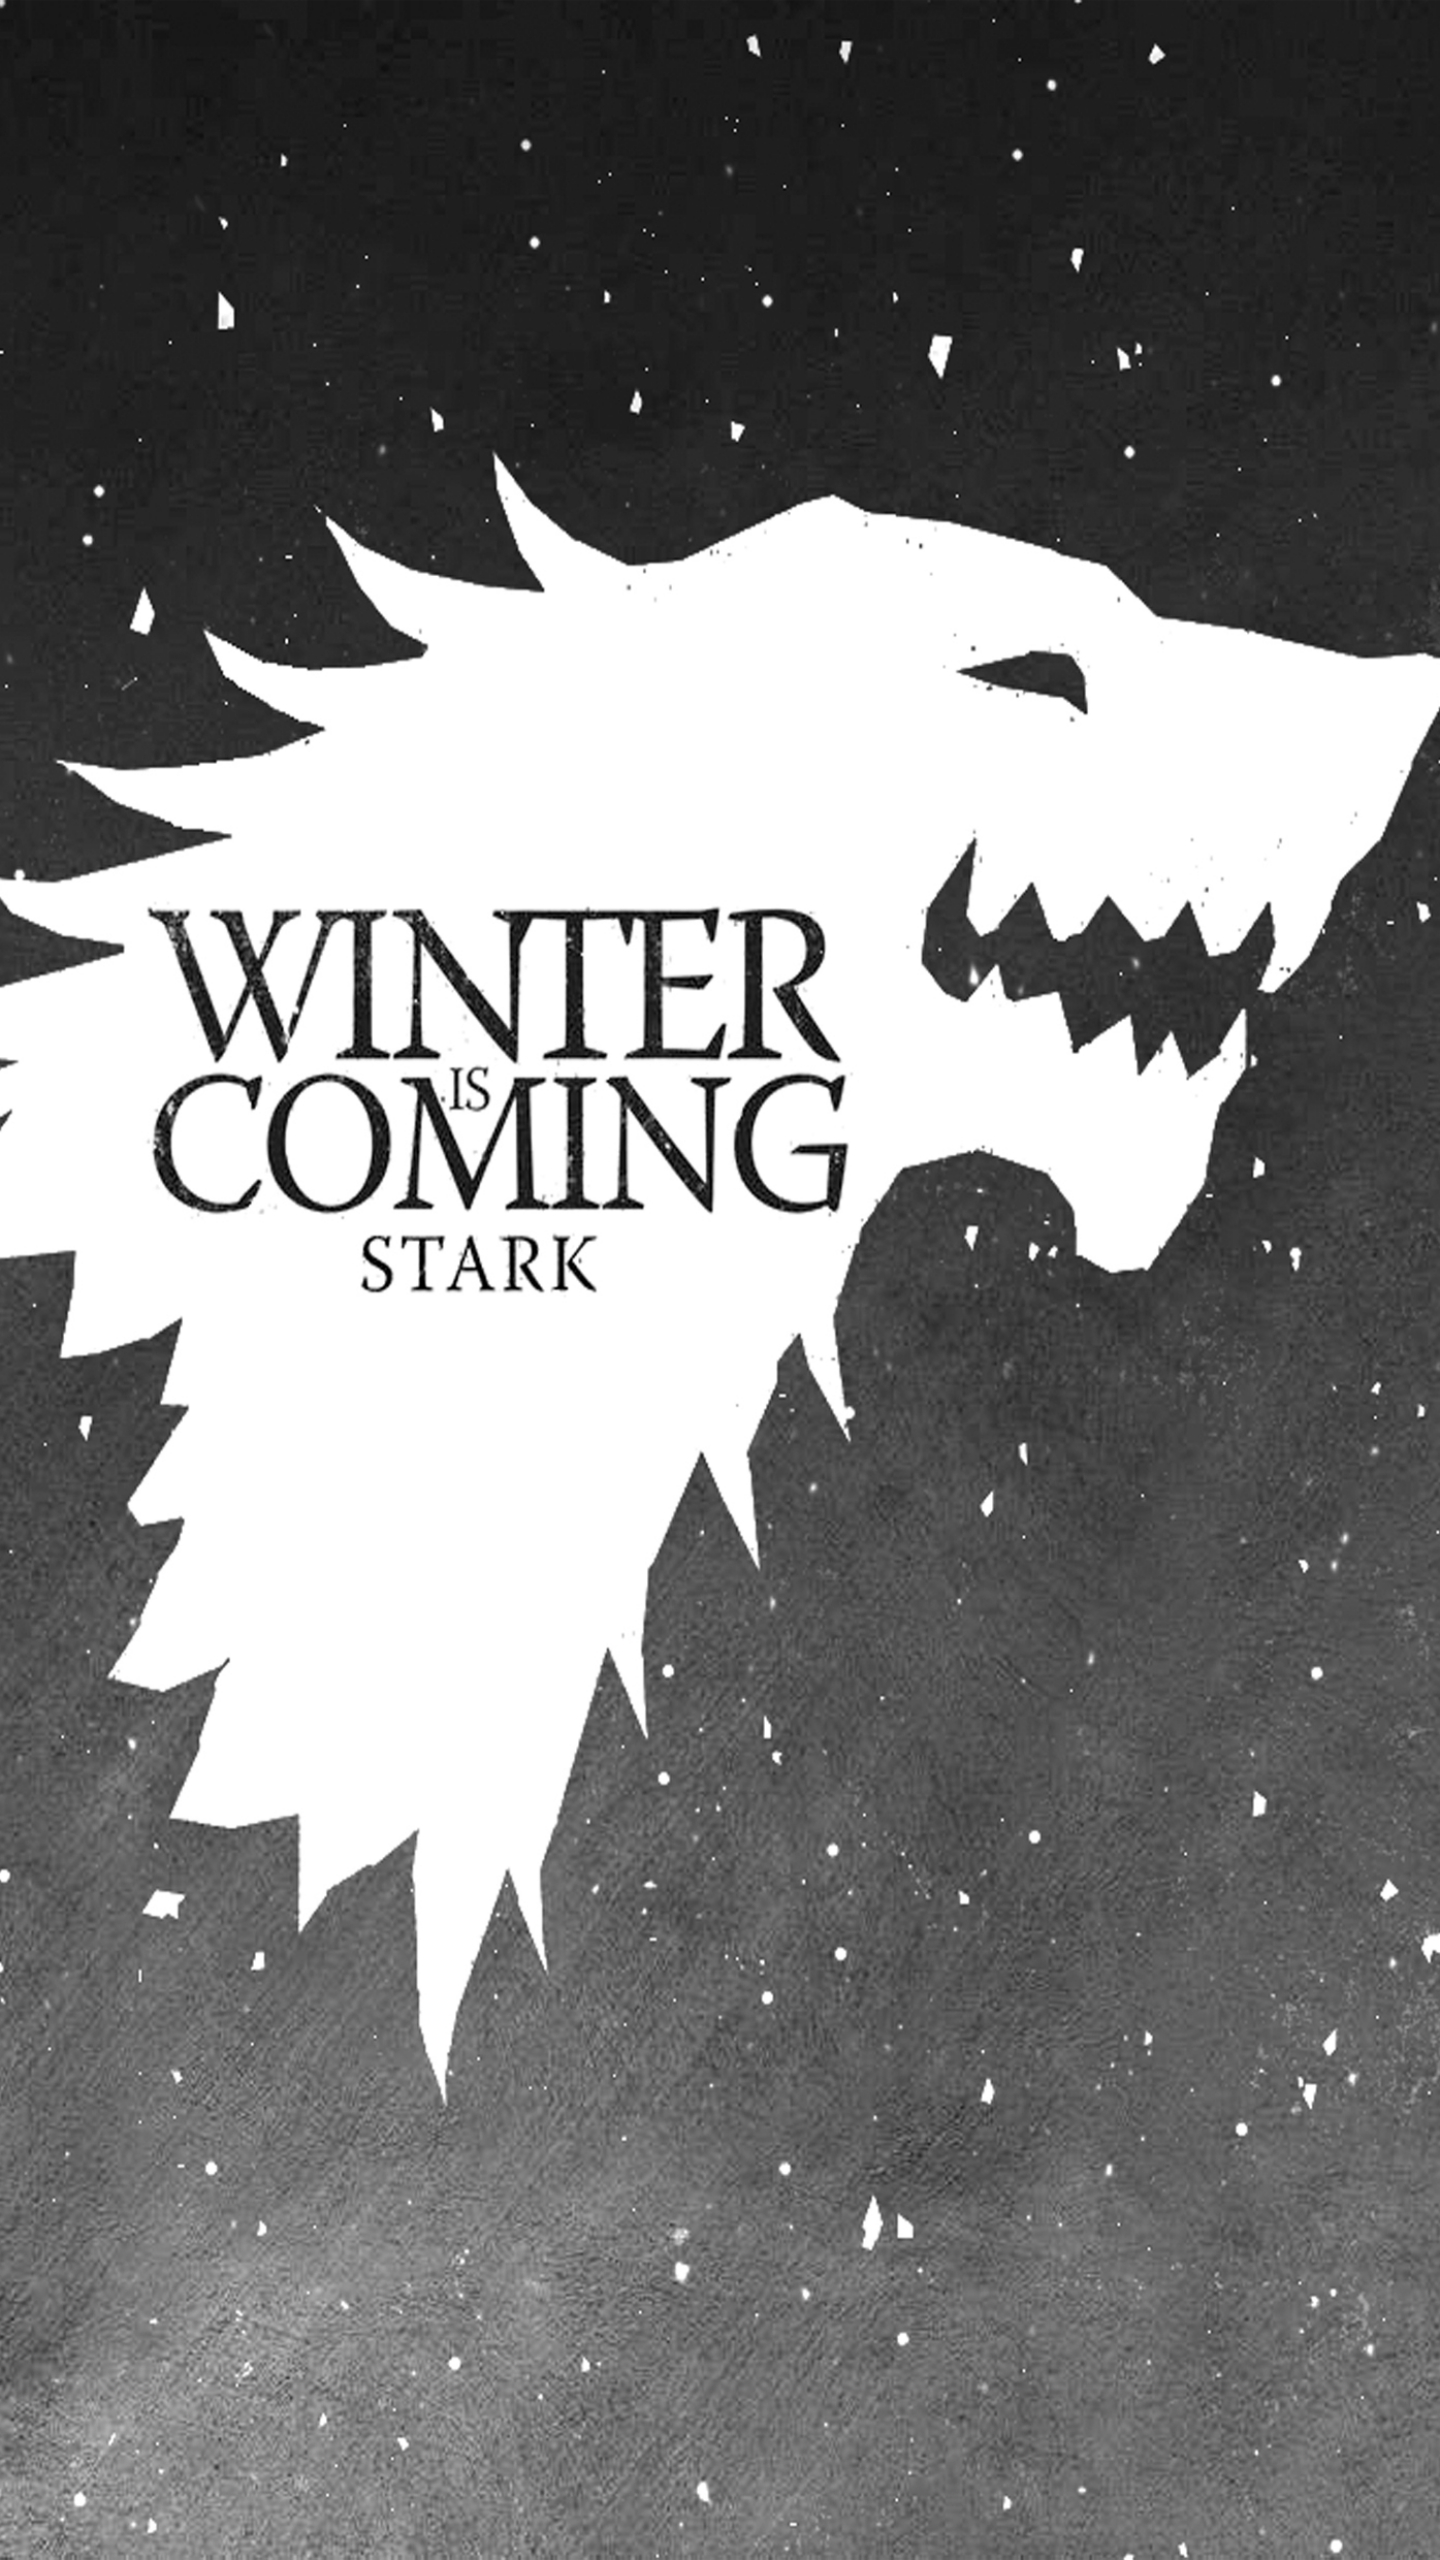 Download Game Of Thrones Cell Phone Wallpaper Gallery